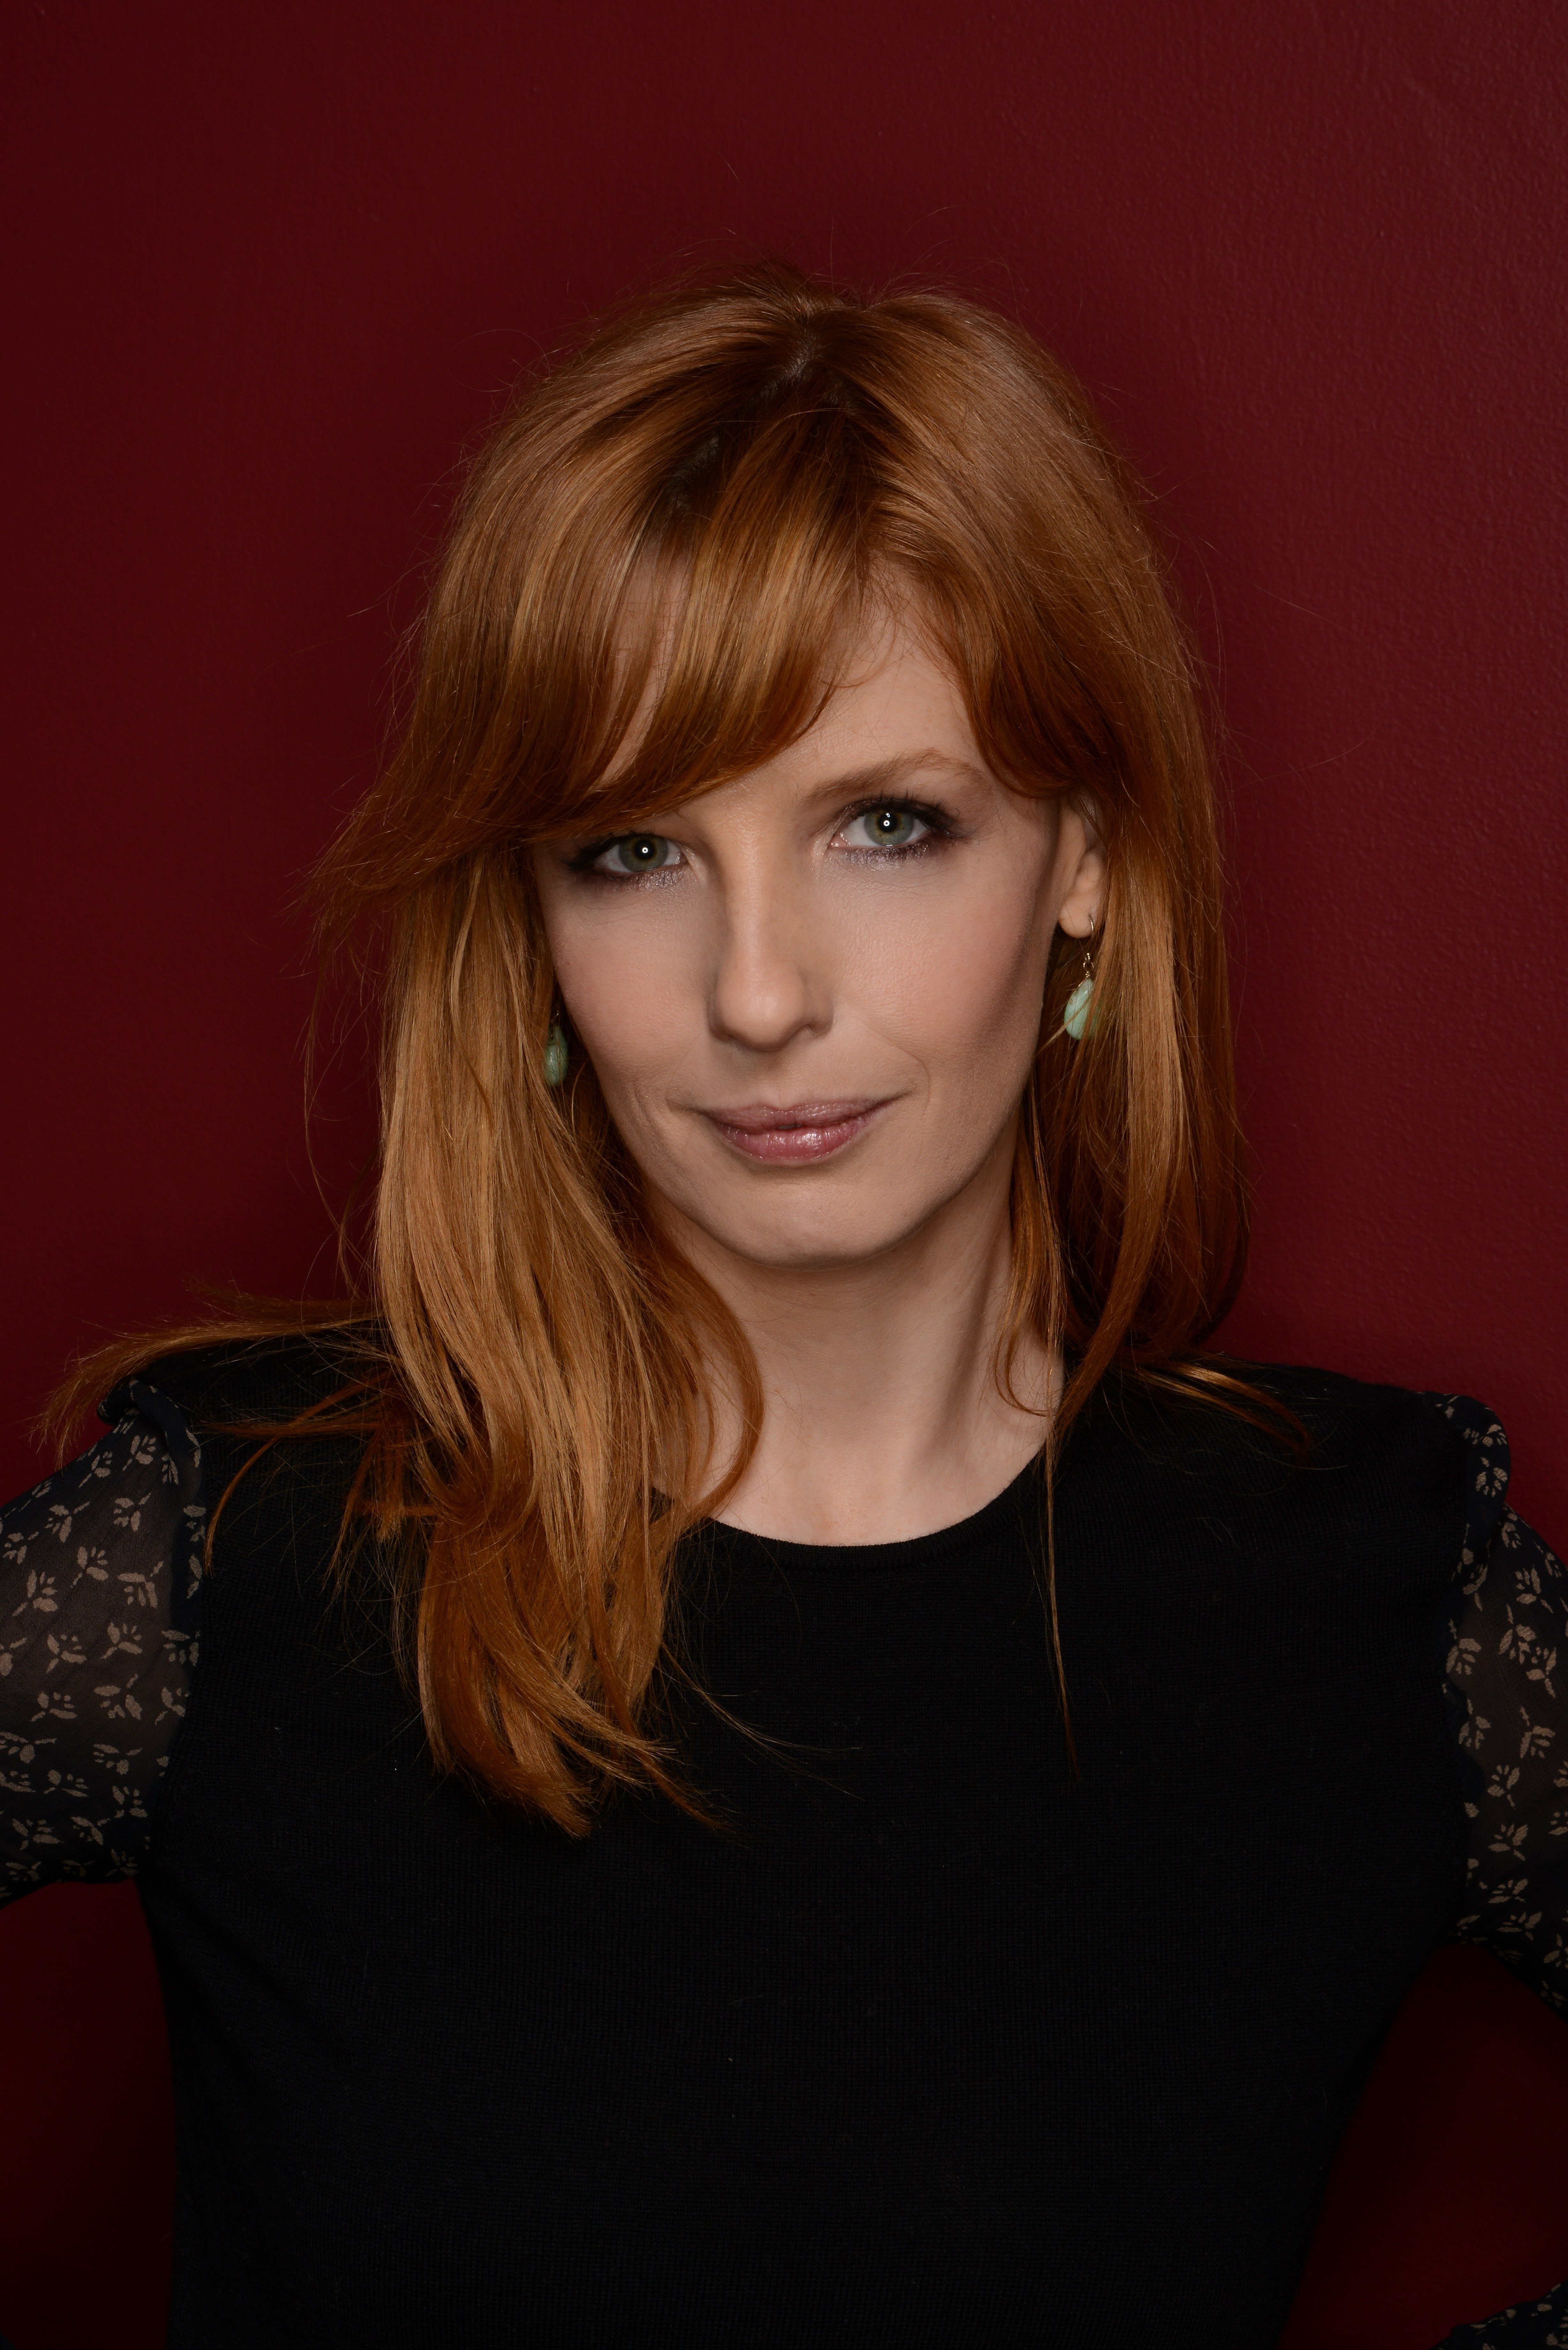 Kelly Reilly | Known people - famous people news and ...